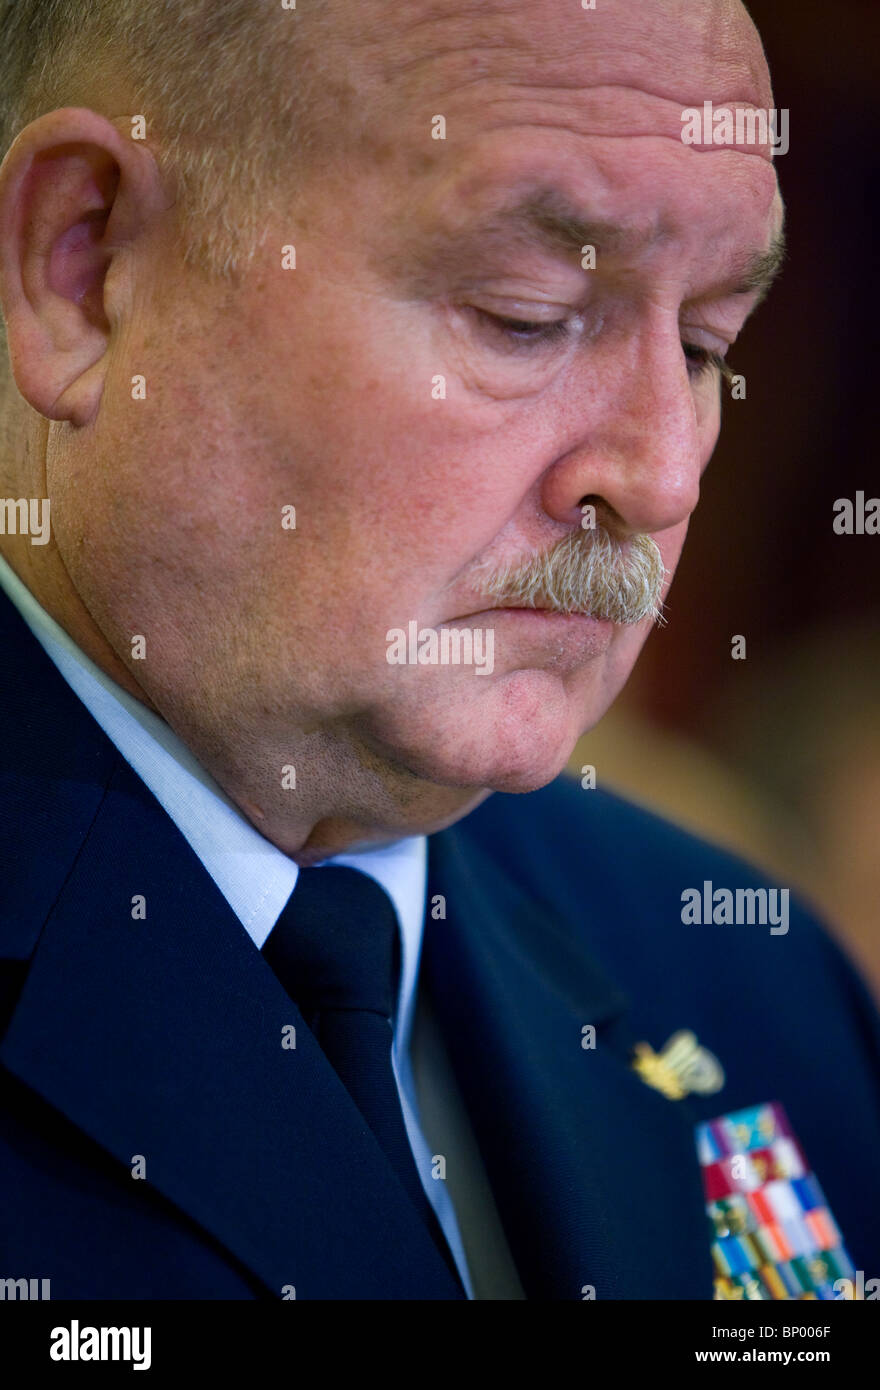 U.S Coast Guard Commandant Admiral Thad Allen. - Stock Image